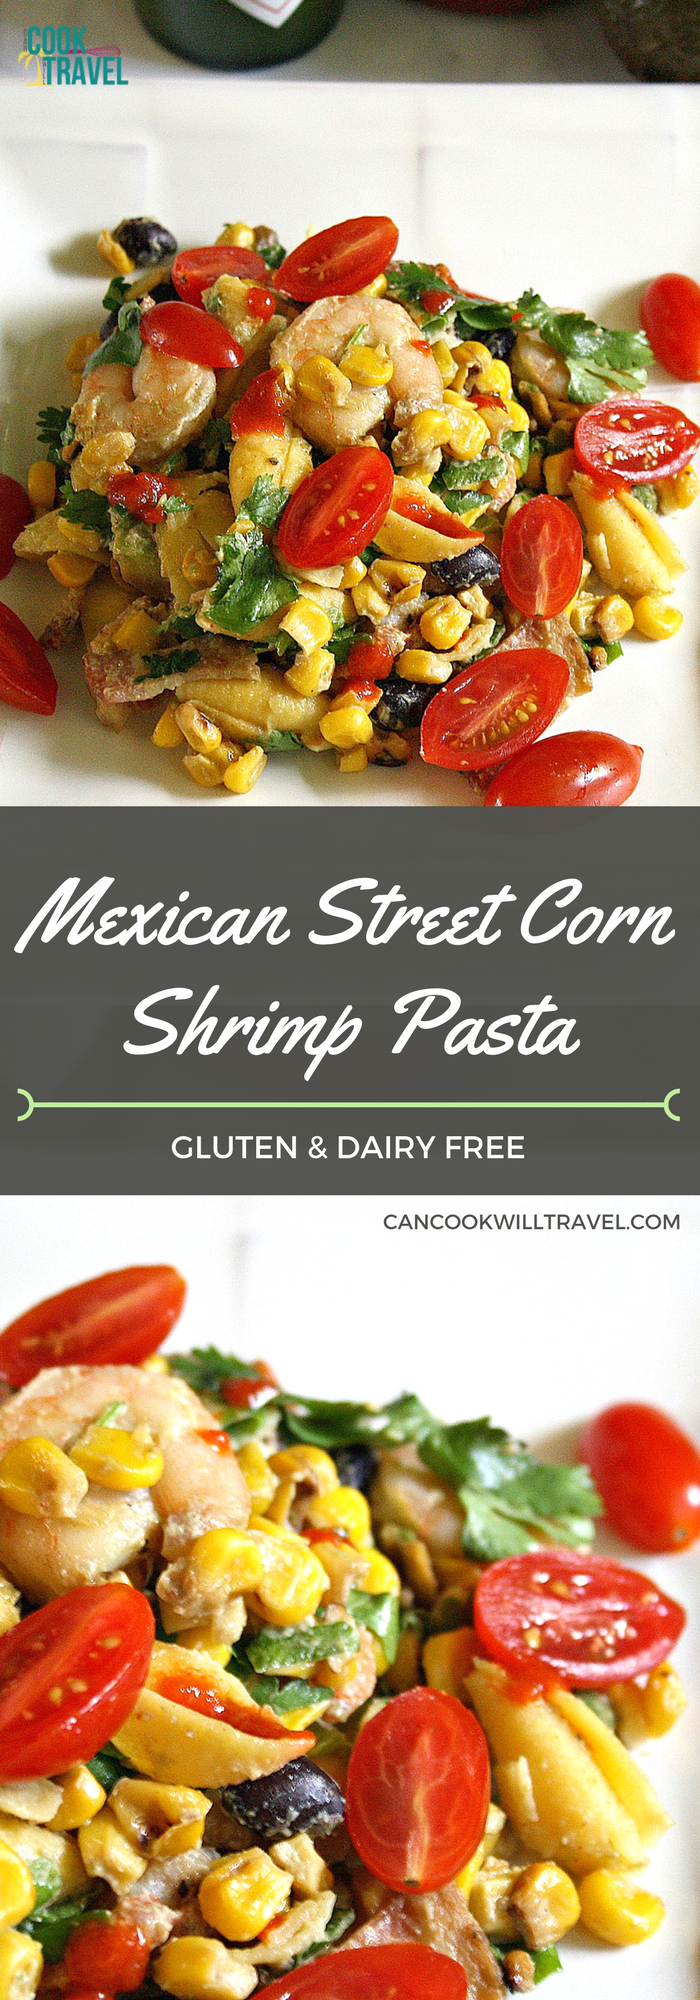 Mexican Street Corn Shrimp Pasta_Collage1